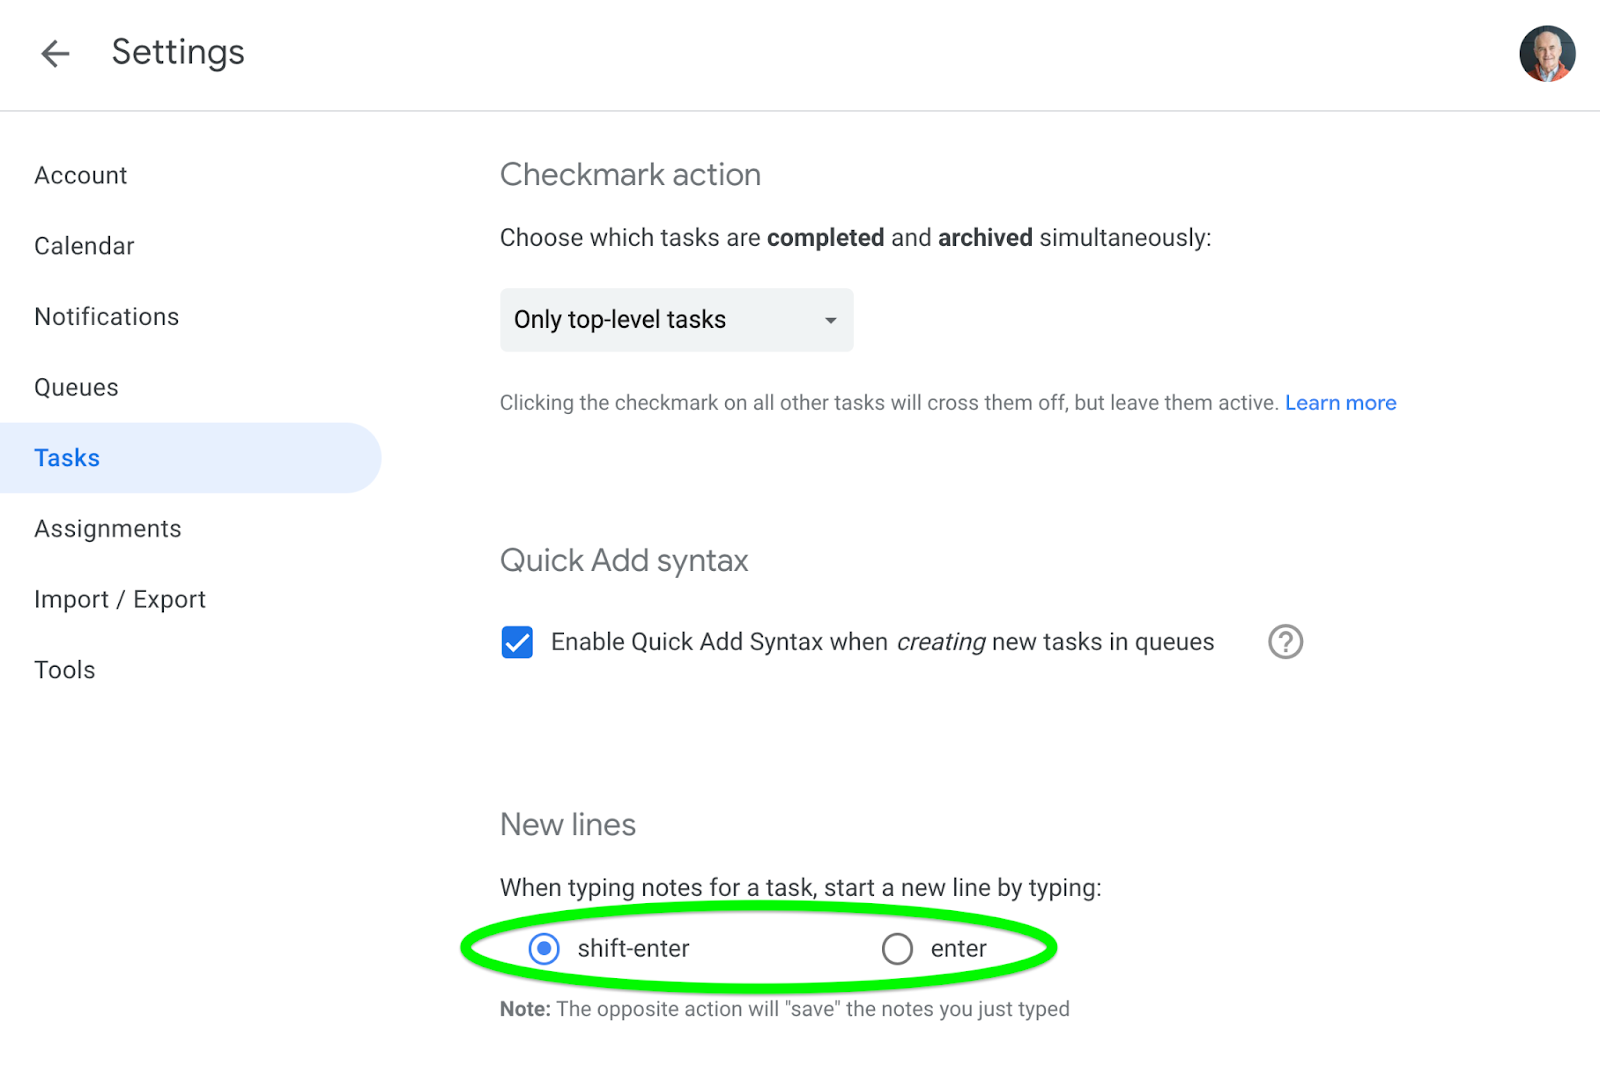 Set whether Enter or Shift + Enter adds a new line in task notes